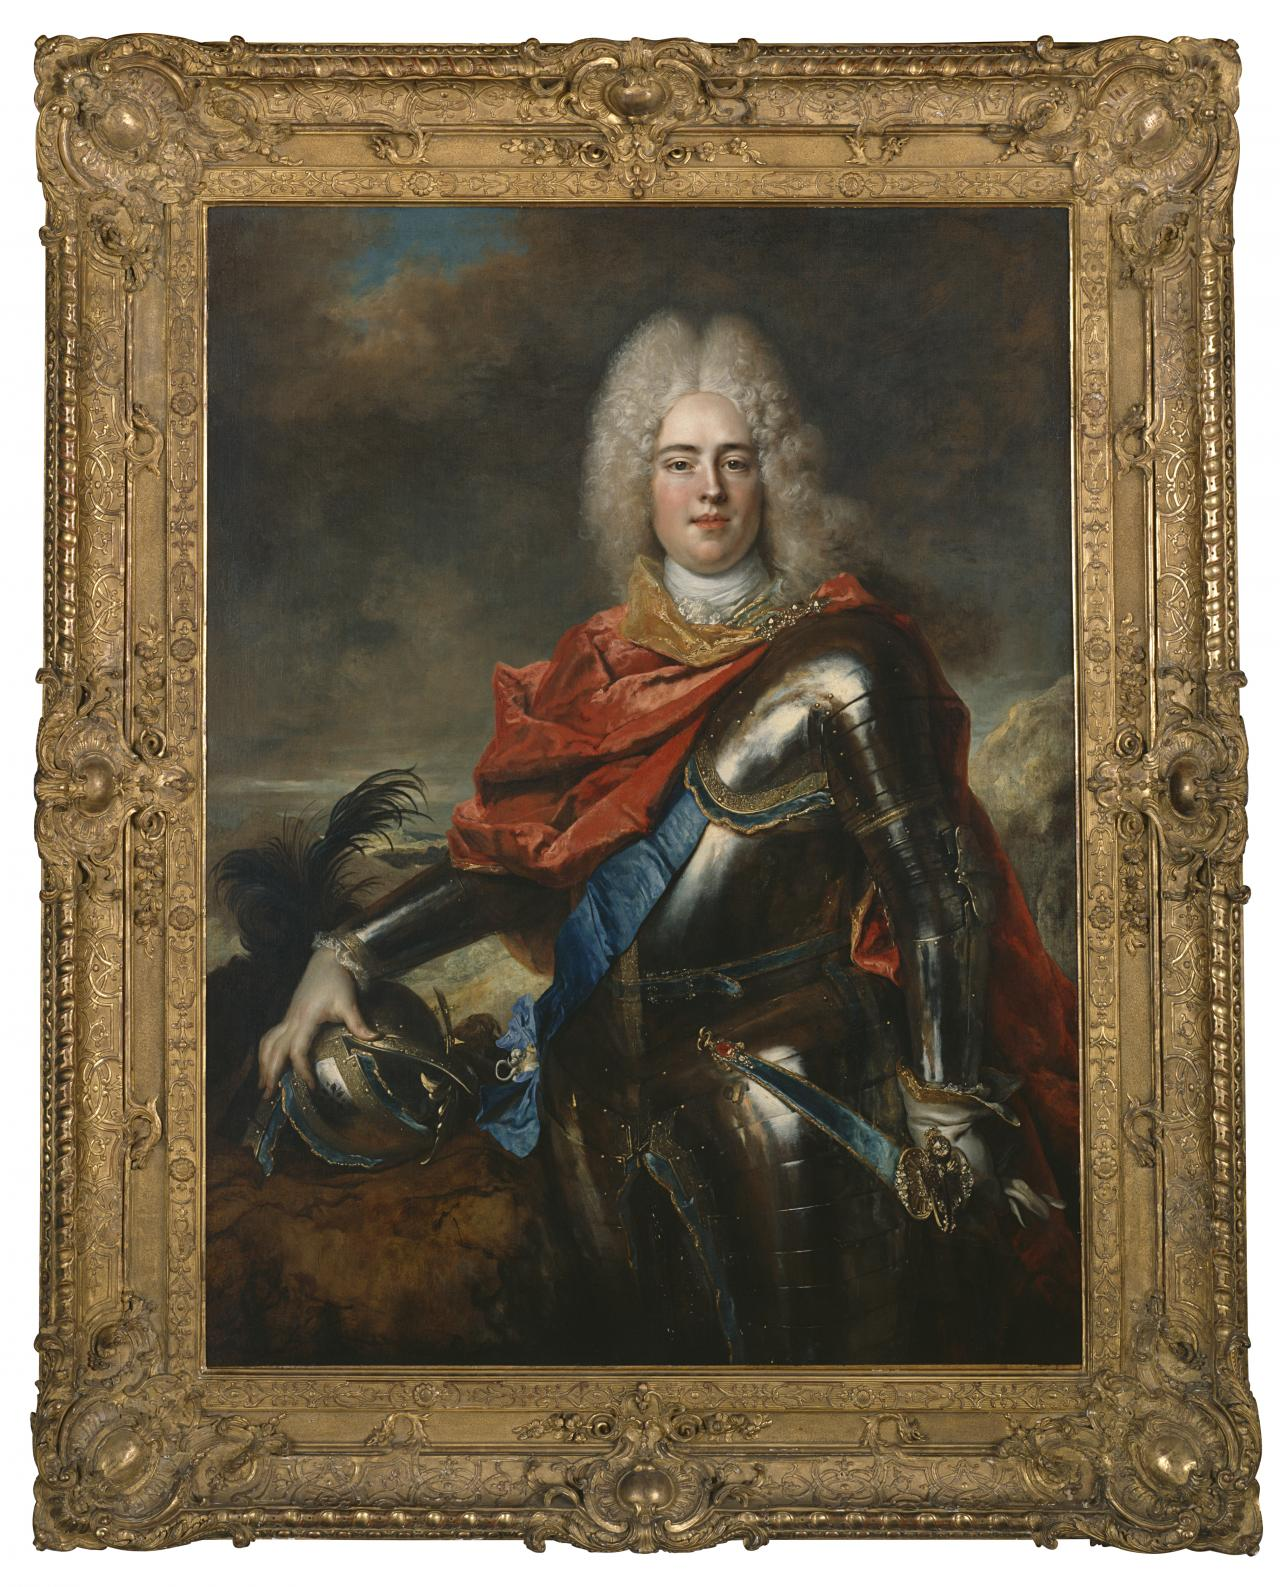 Crown Prince Frederick Augustus of Saxony